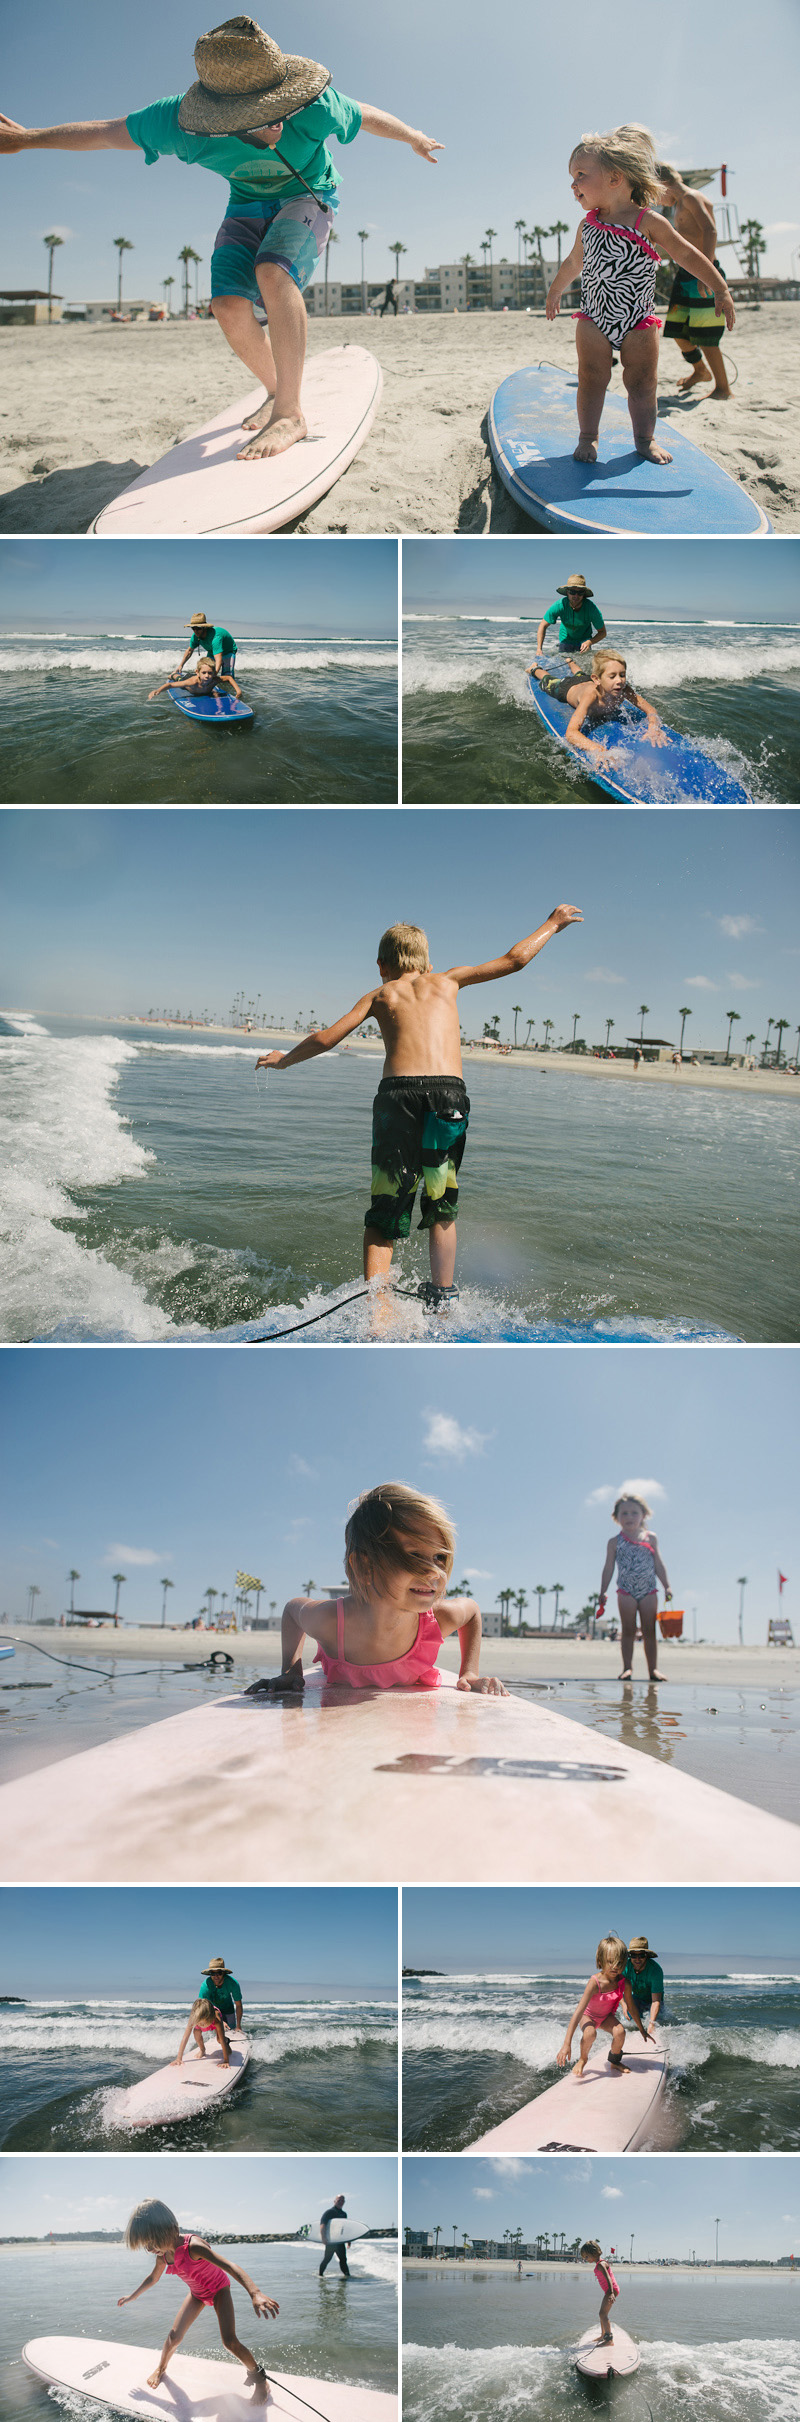 family surf trip oceanside california